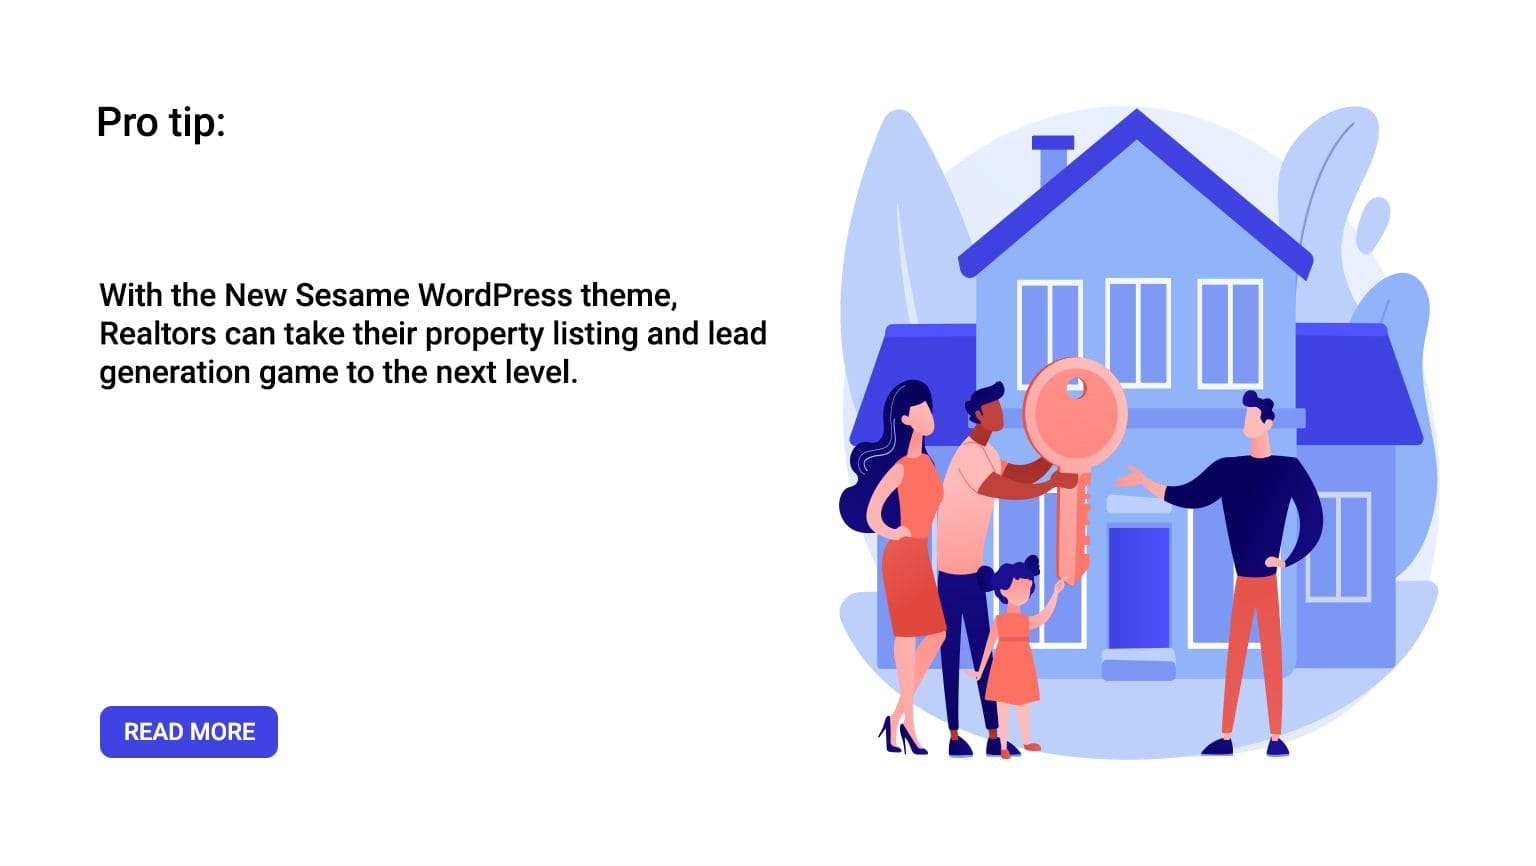 Pro-Tip: With the New Sesame WordPress theme, Realtors can take their property listing and lead generation game to the next level.